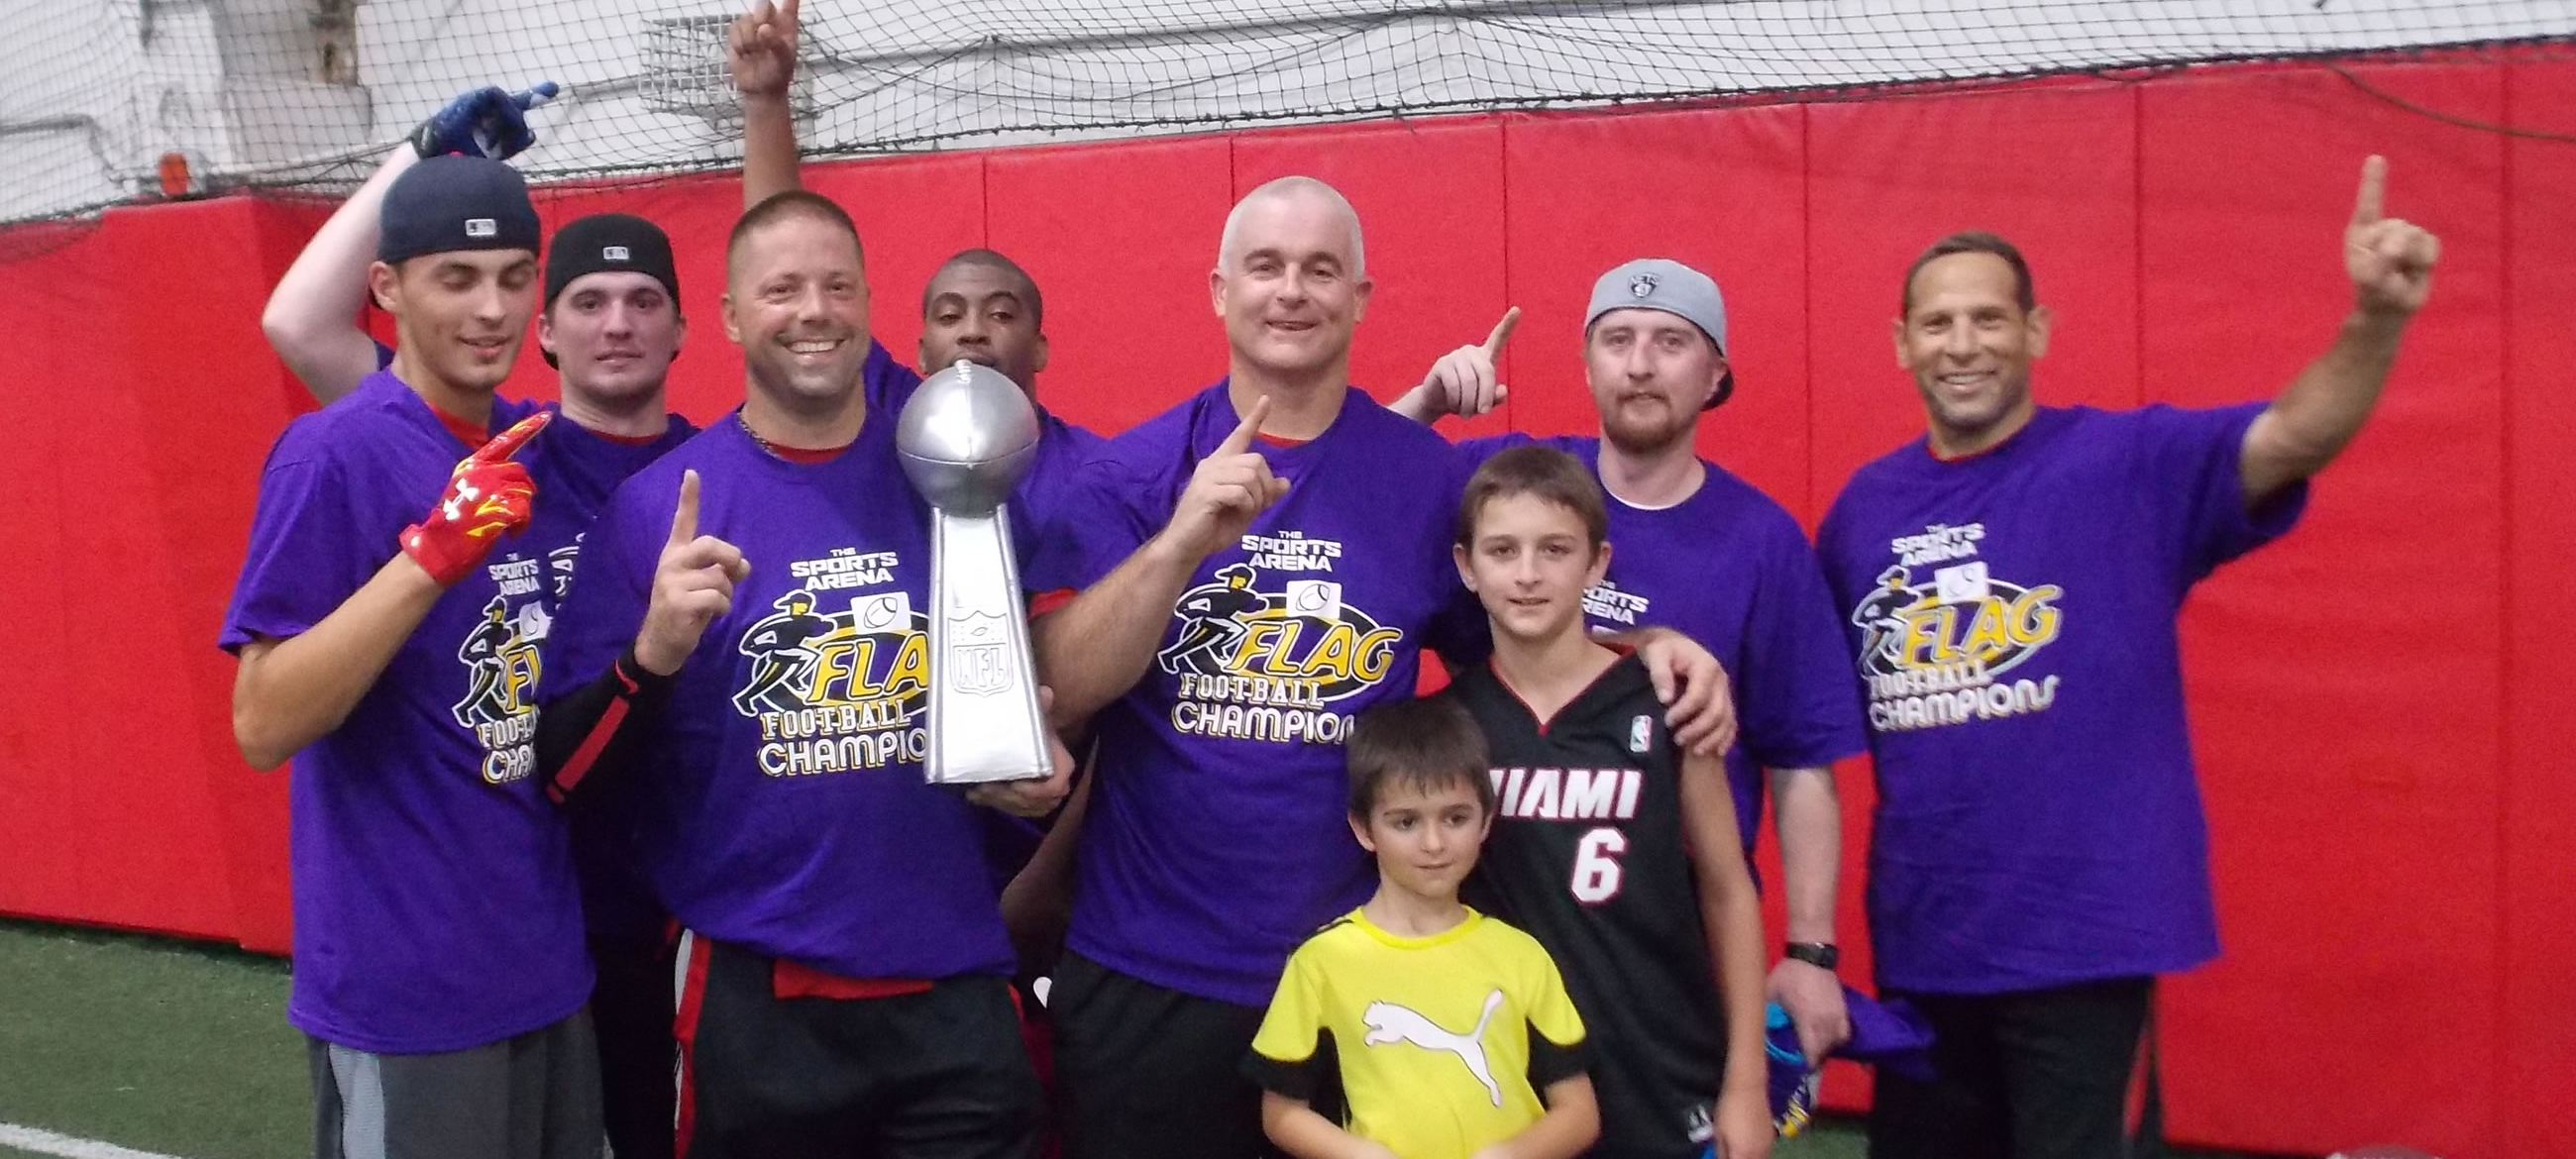 Long Island Adult Flag Football League